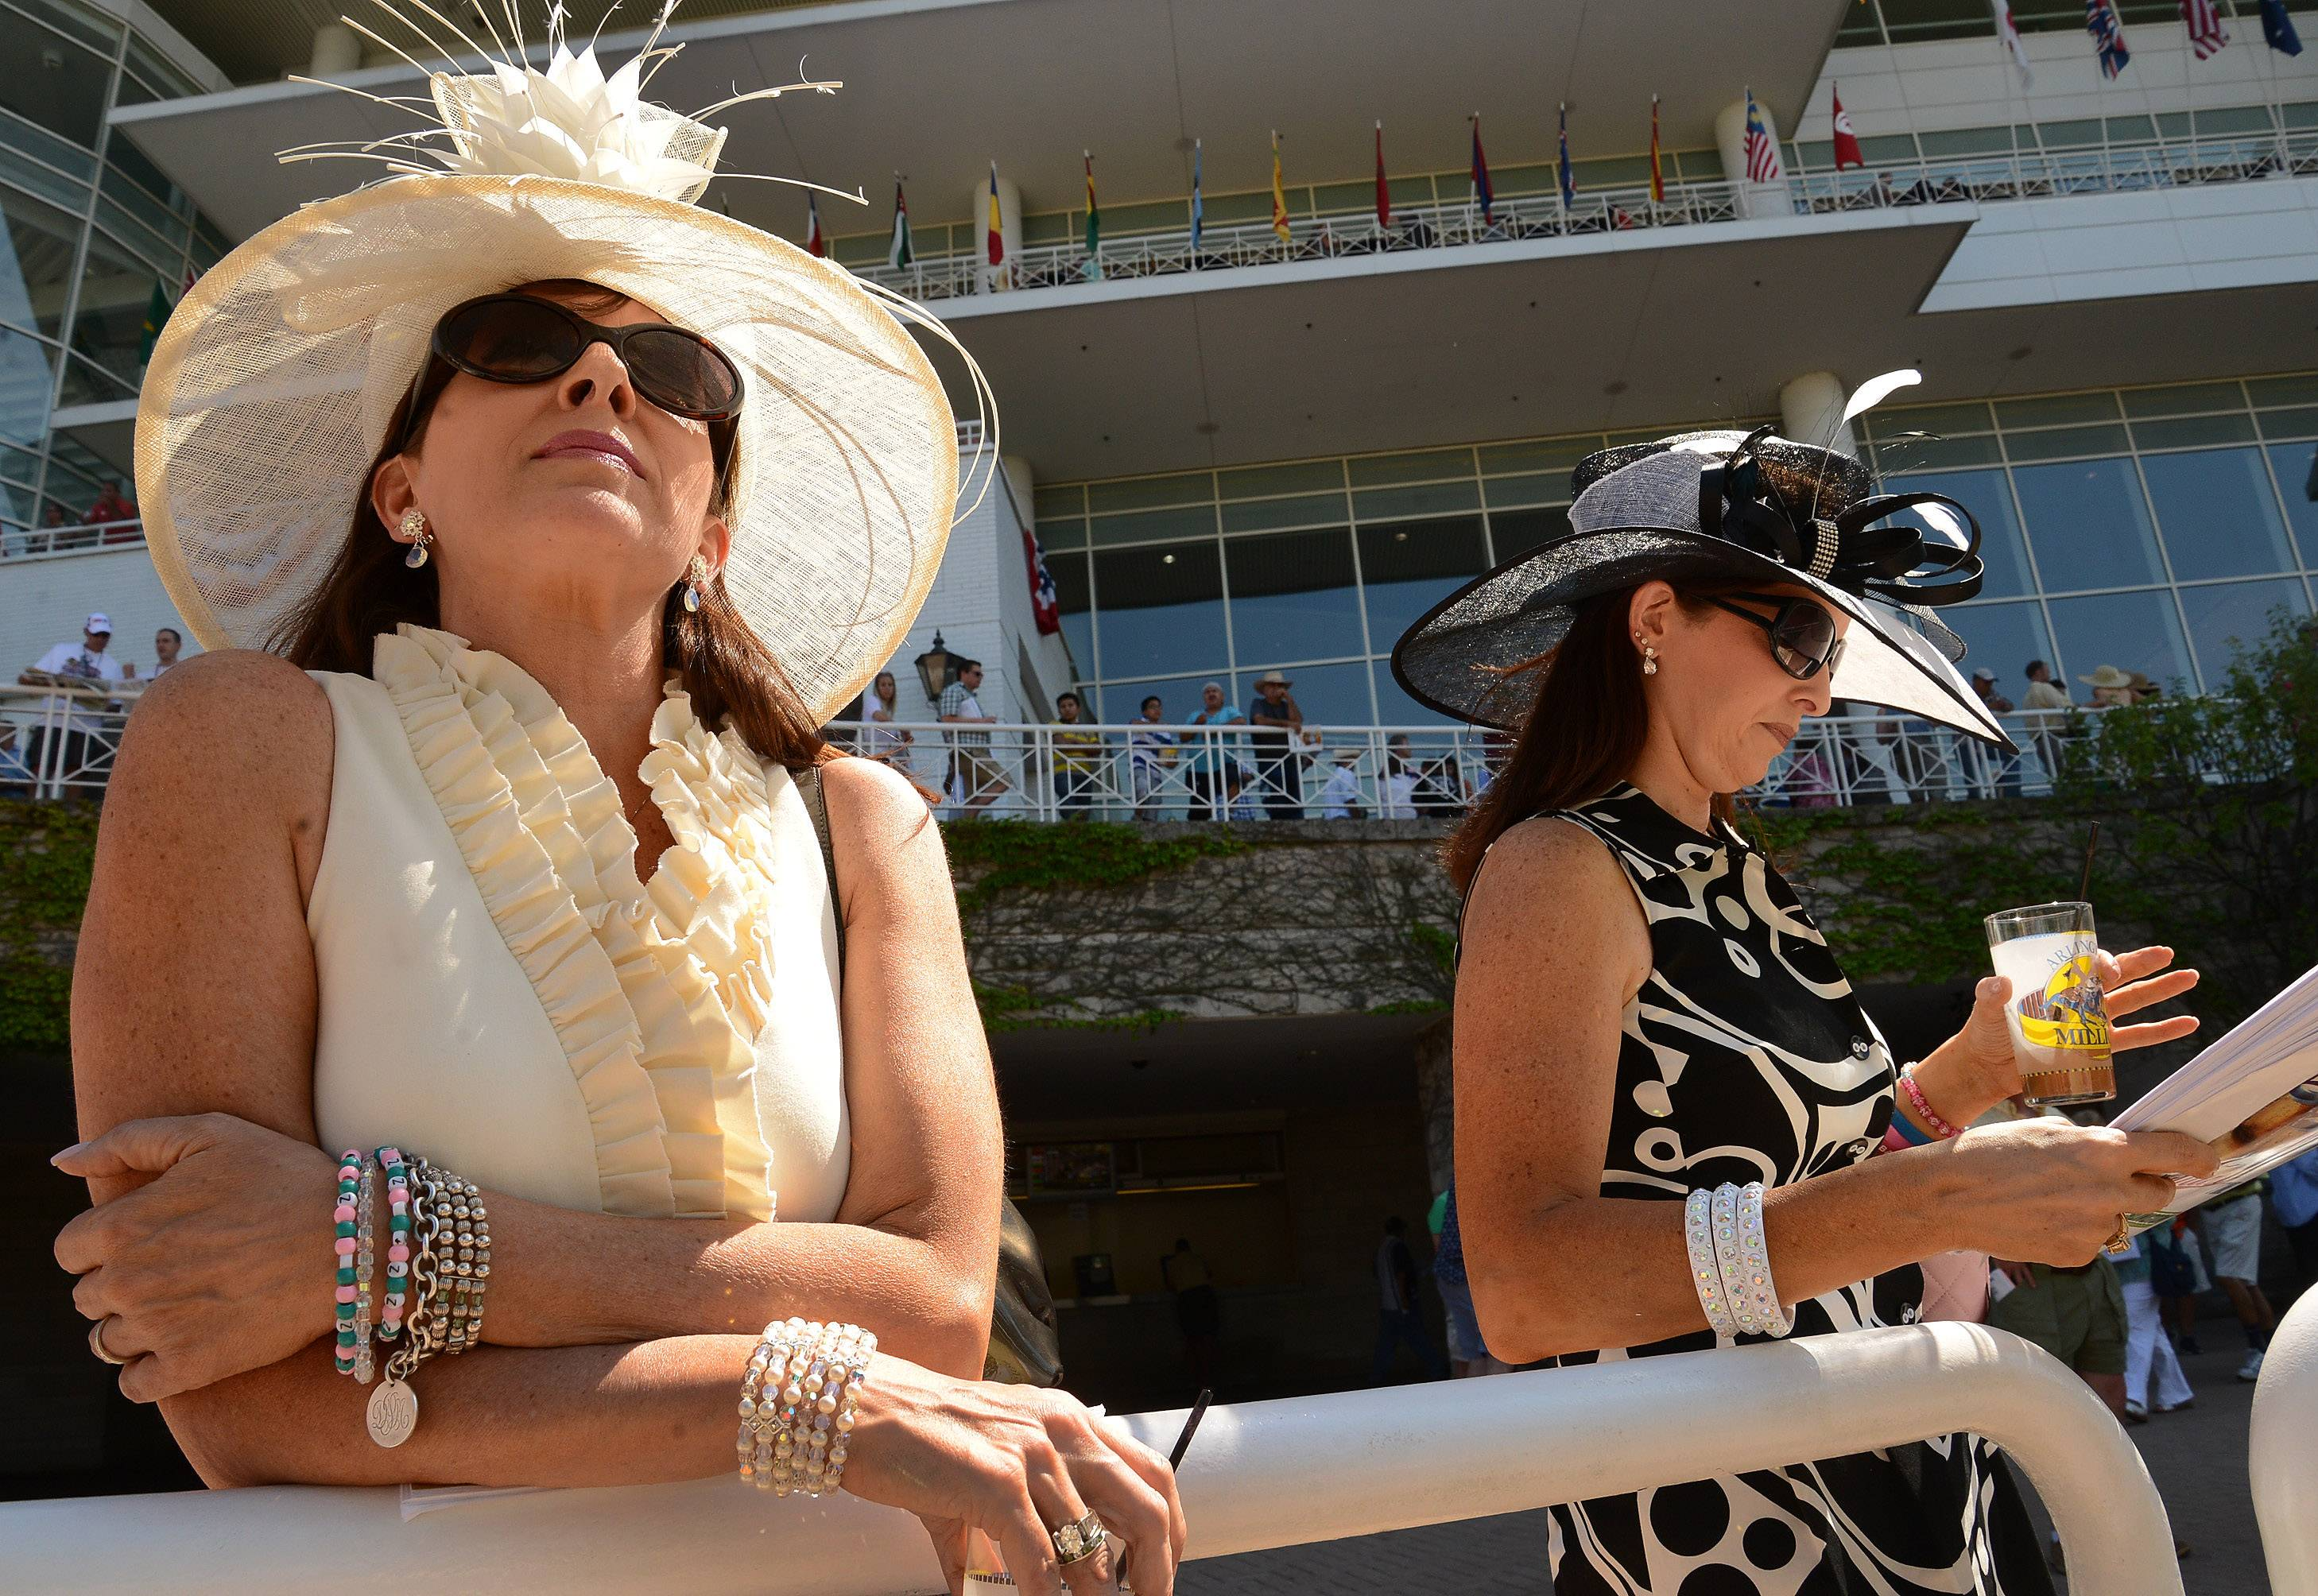 Donna Ludvik, left, and Dora Petruli,s both of Glendale Heights, watch for their favorite horses in the paddock during the Arlington International Festival of Racing at Arlington Racecourse.